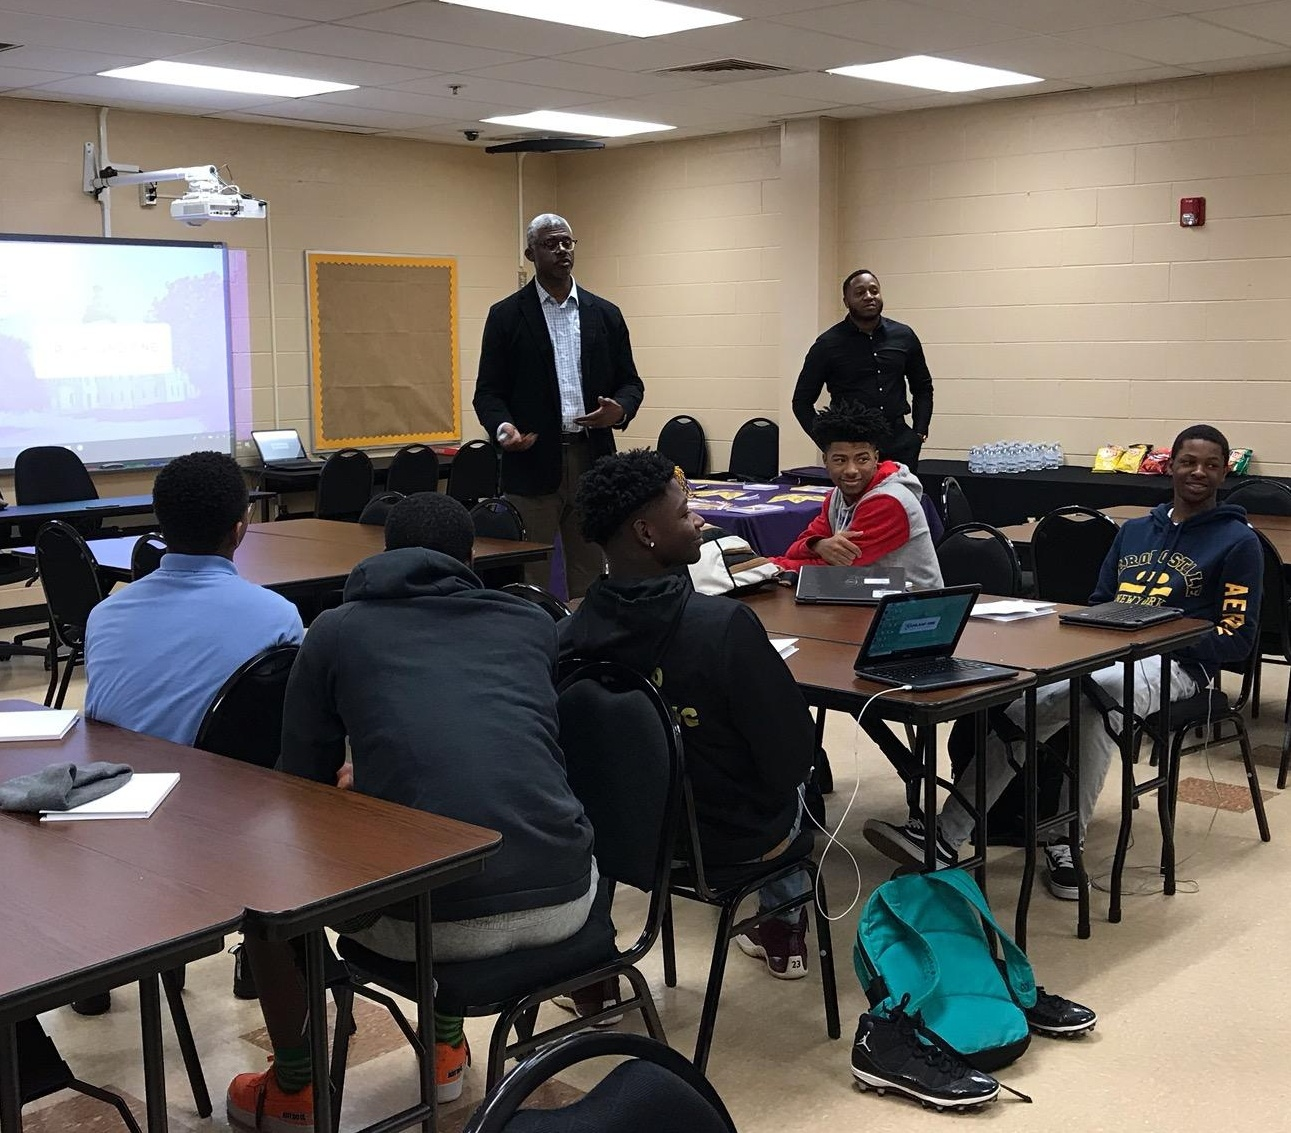 Dr. Smith speaking at Lower Richland High School